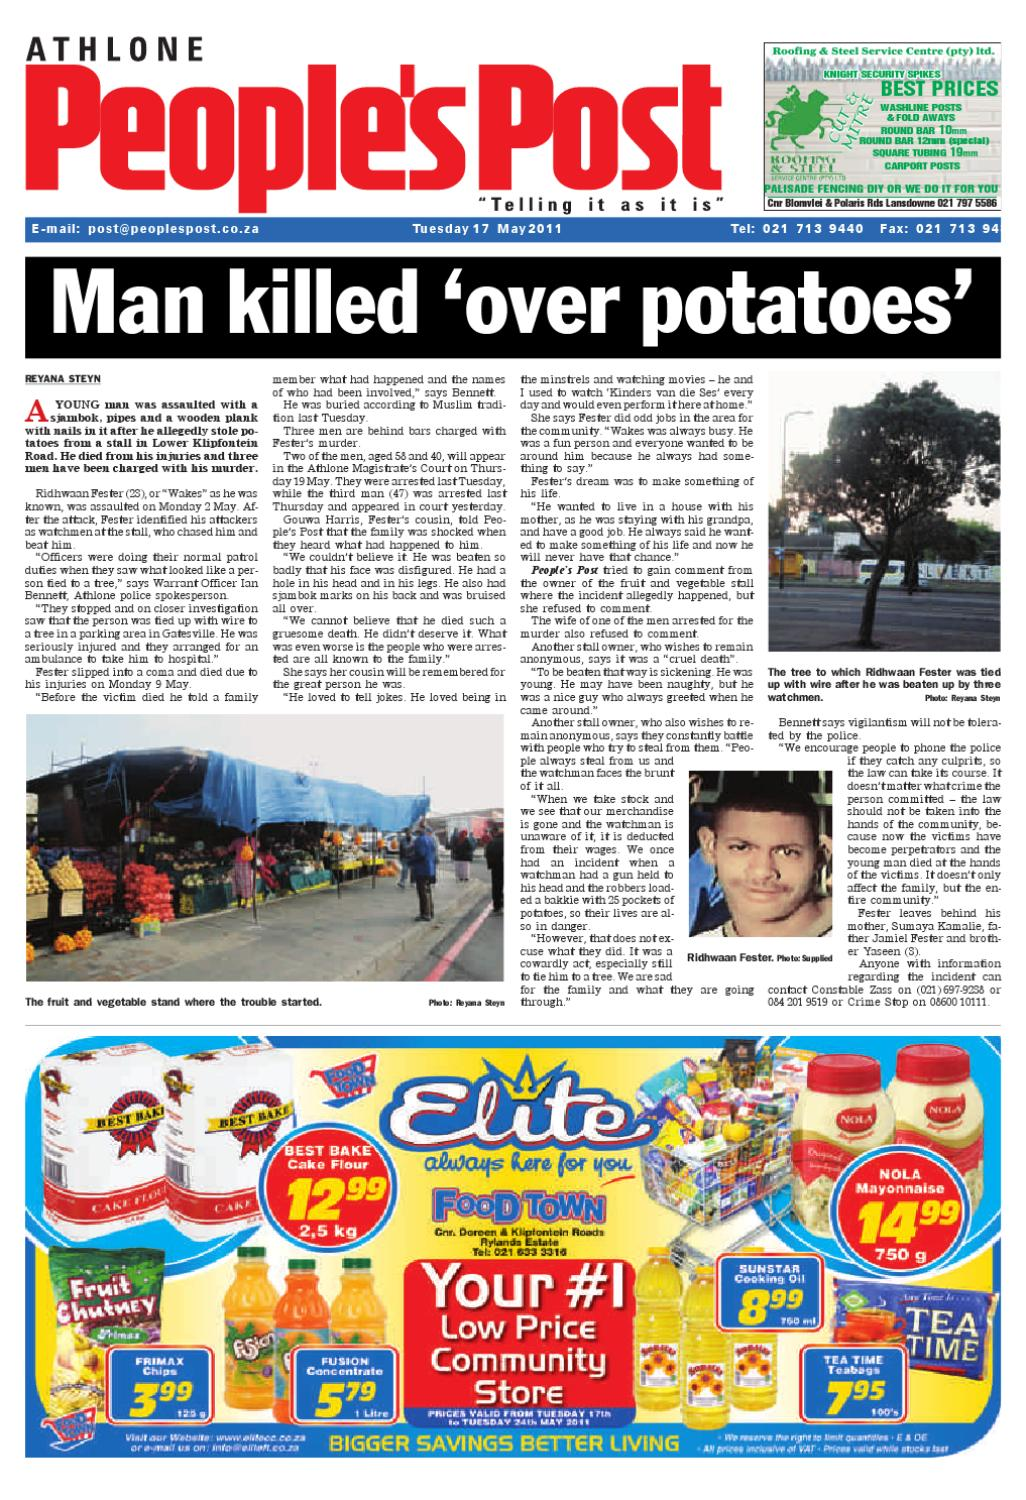 Peoples Post Athlone Edition 17 05 2011 By People S Post